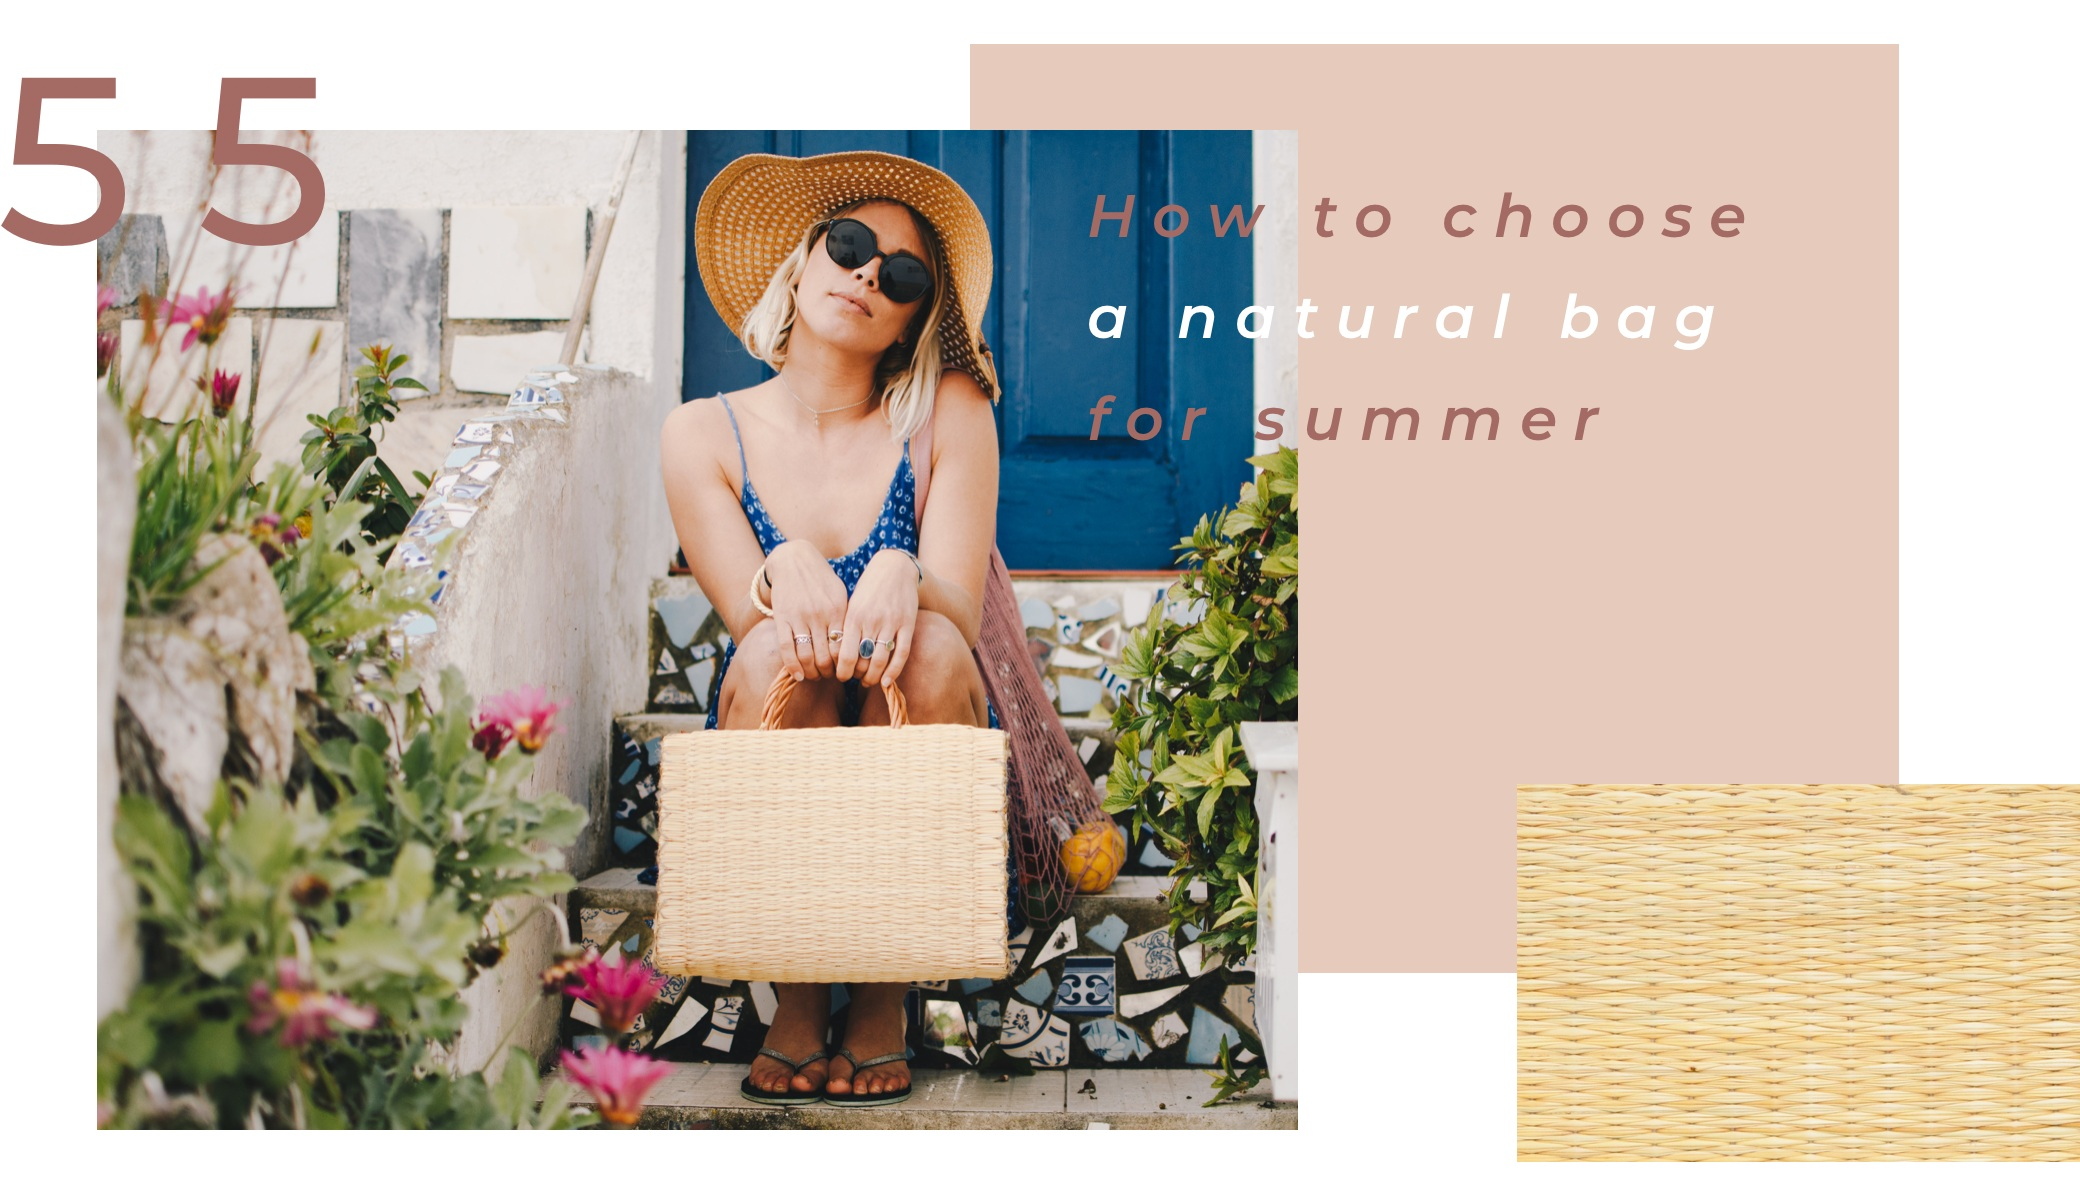 How+to+choose+a+natural+straw+bag+for+summer+_+Soi+55.jpeg